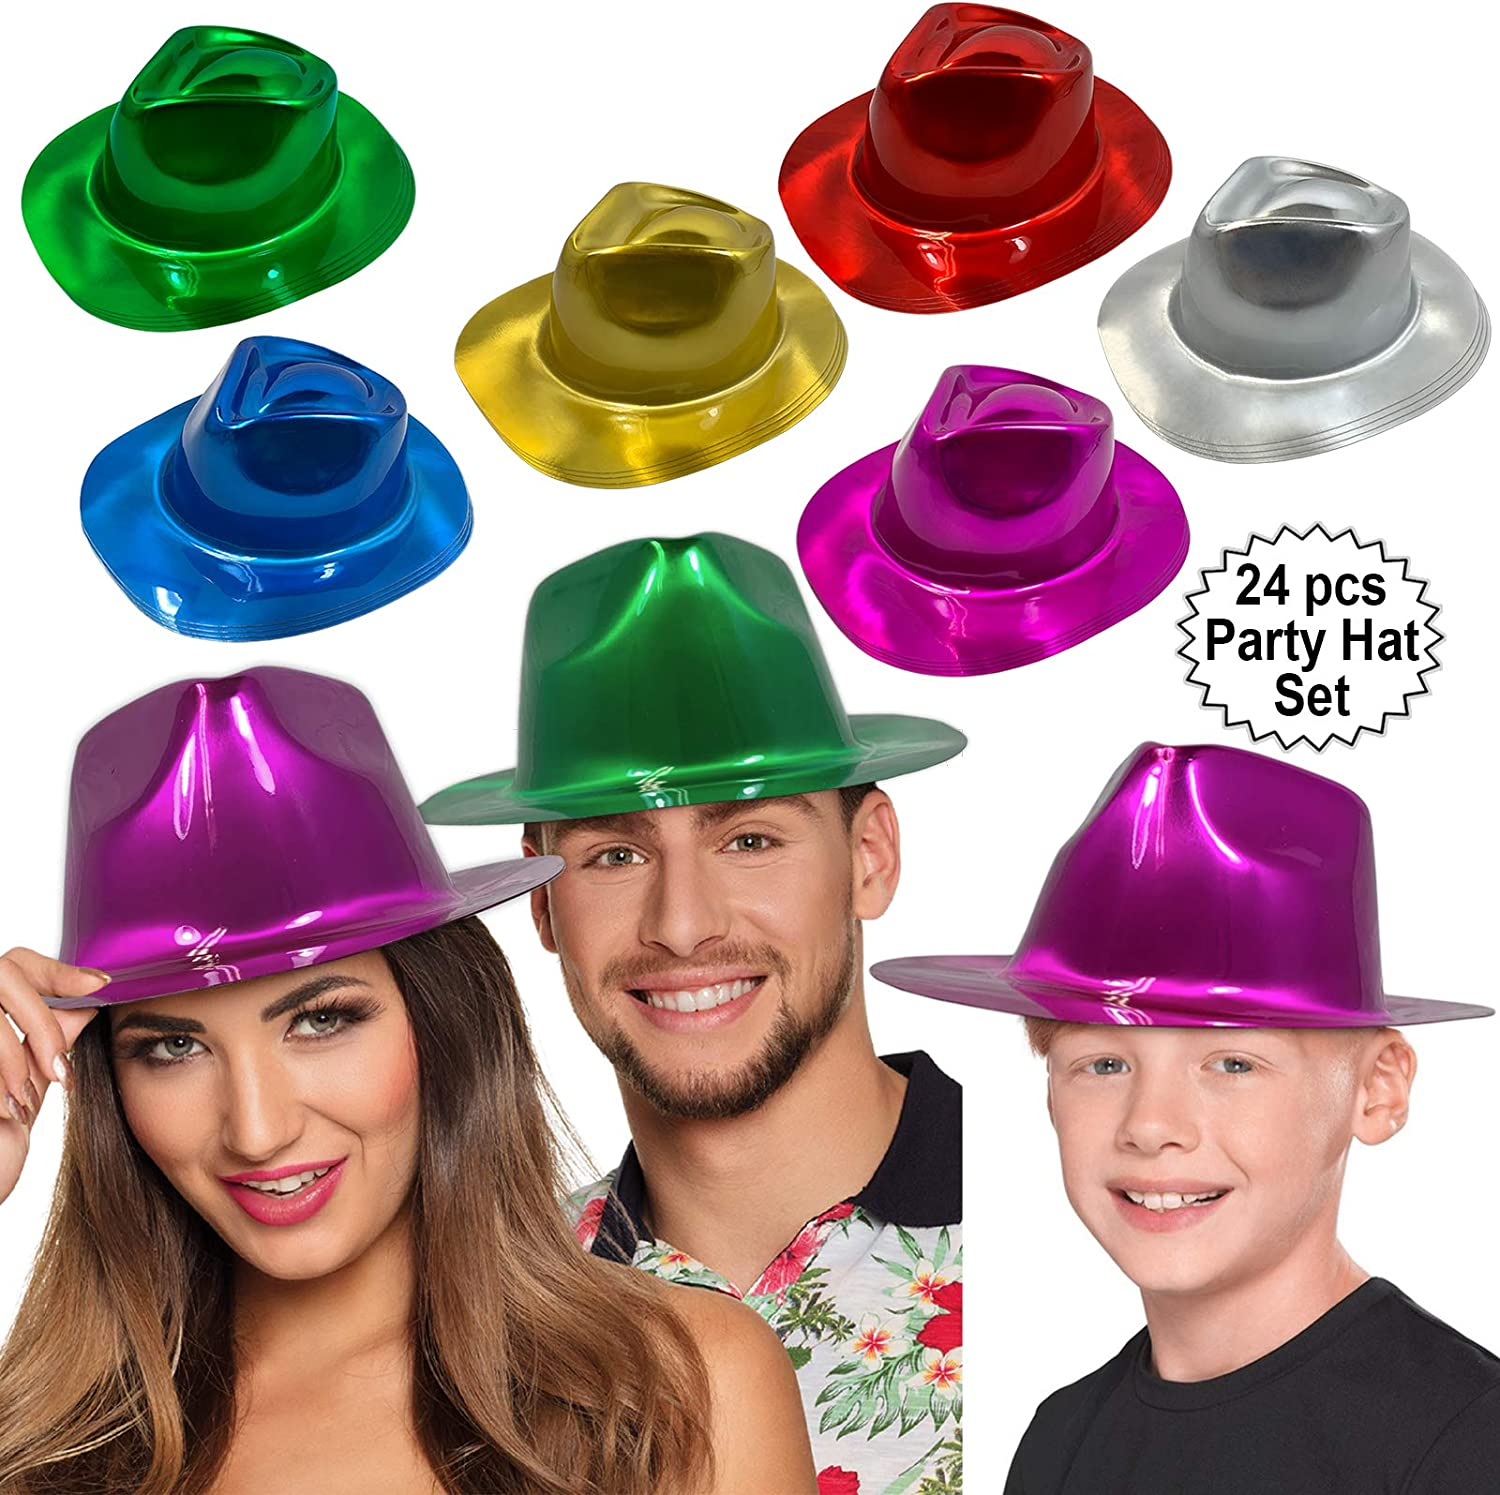 Anapoliz Party Gangster Hats 24 pcs   Metallic Assorted Colors, Plastic Fedora Party Hats for Kids, Adults   Costume, Dress Up, Photo Booth Parties: Clothing